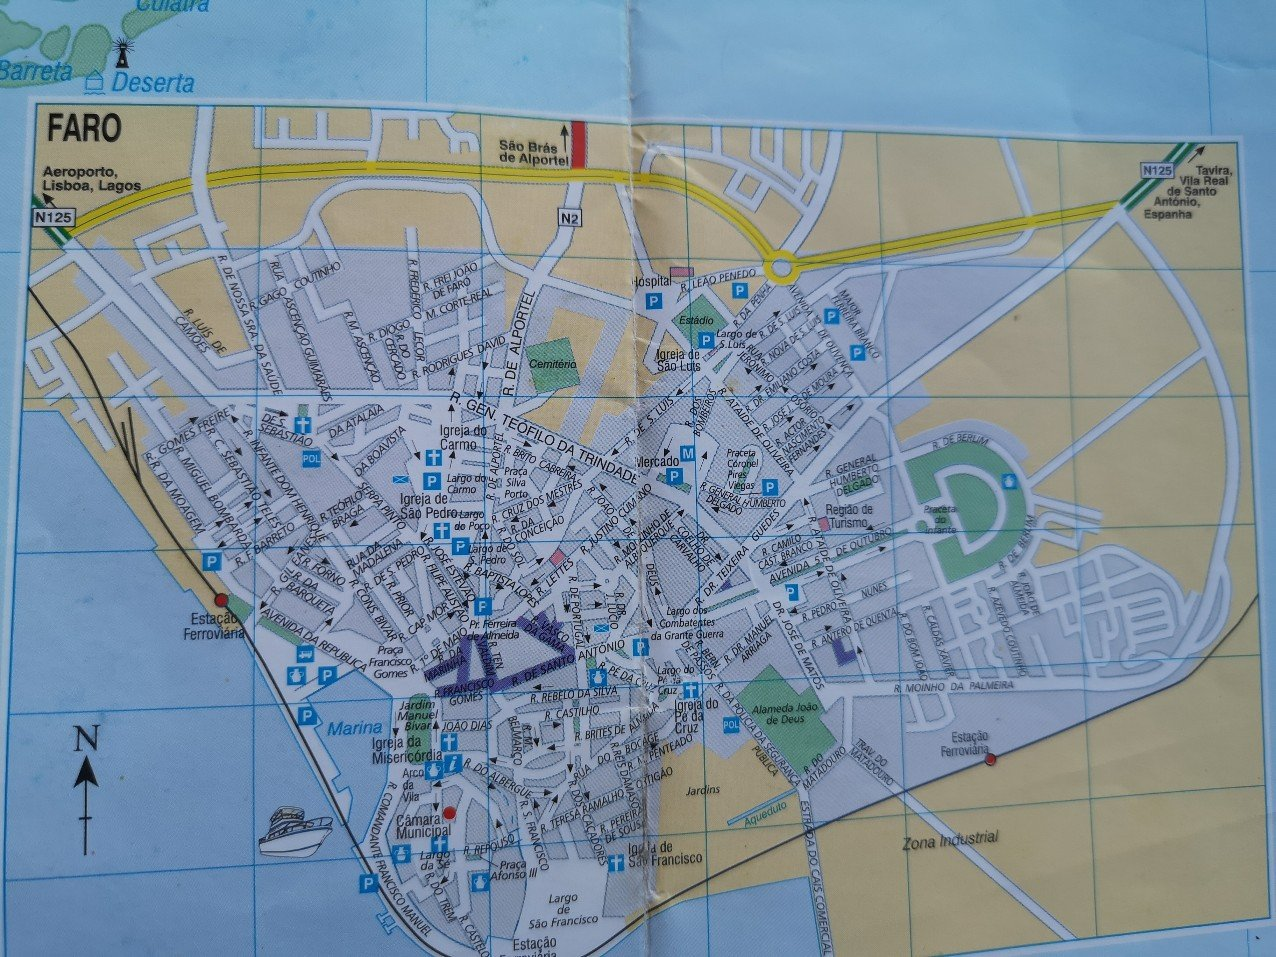 Paper map of Faro, Portugal